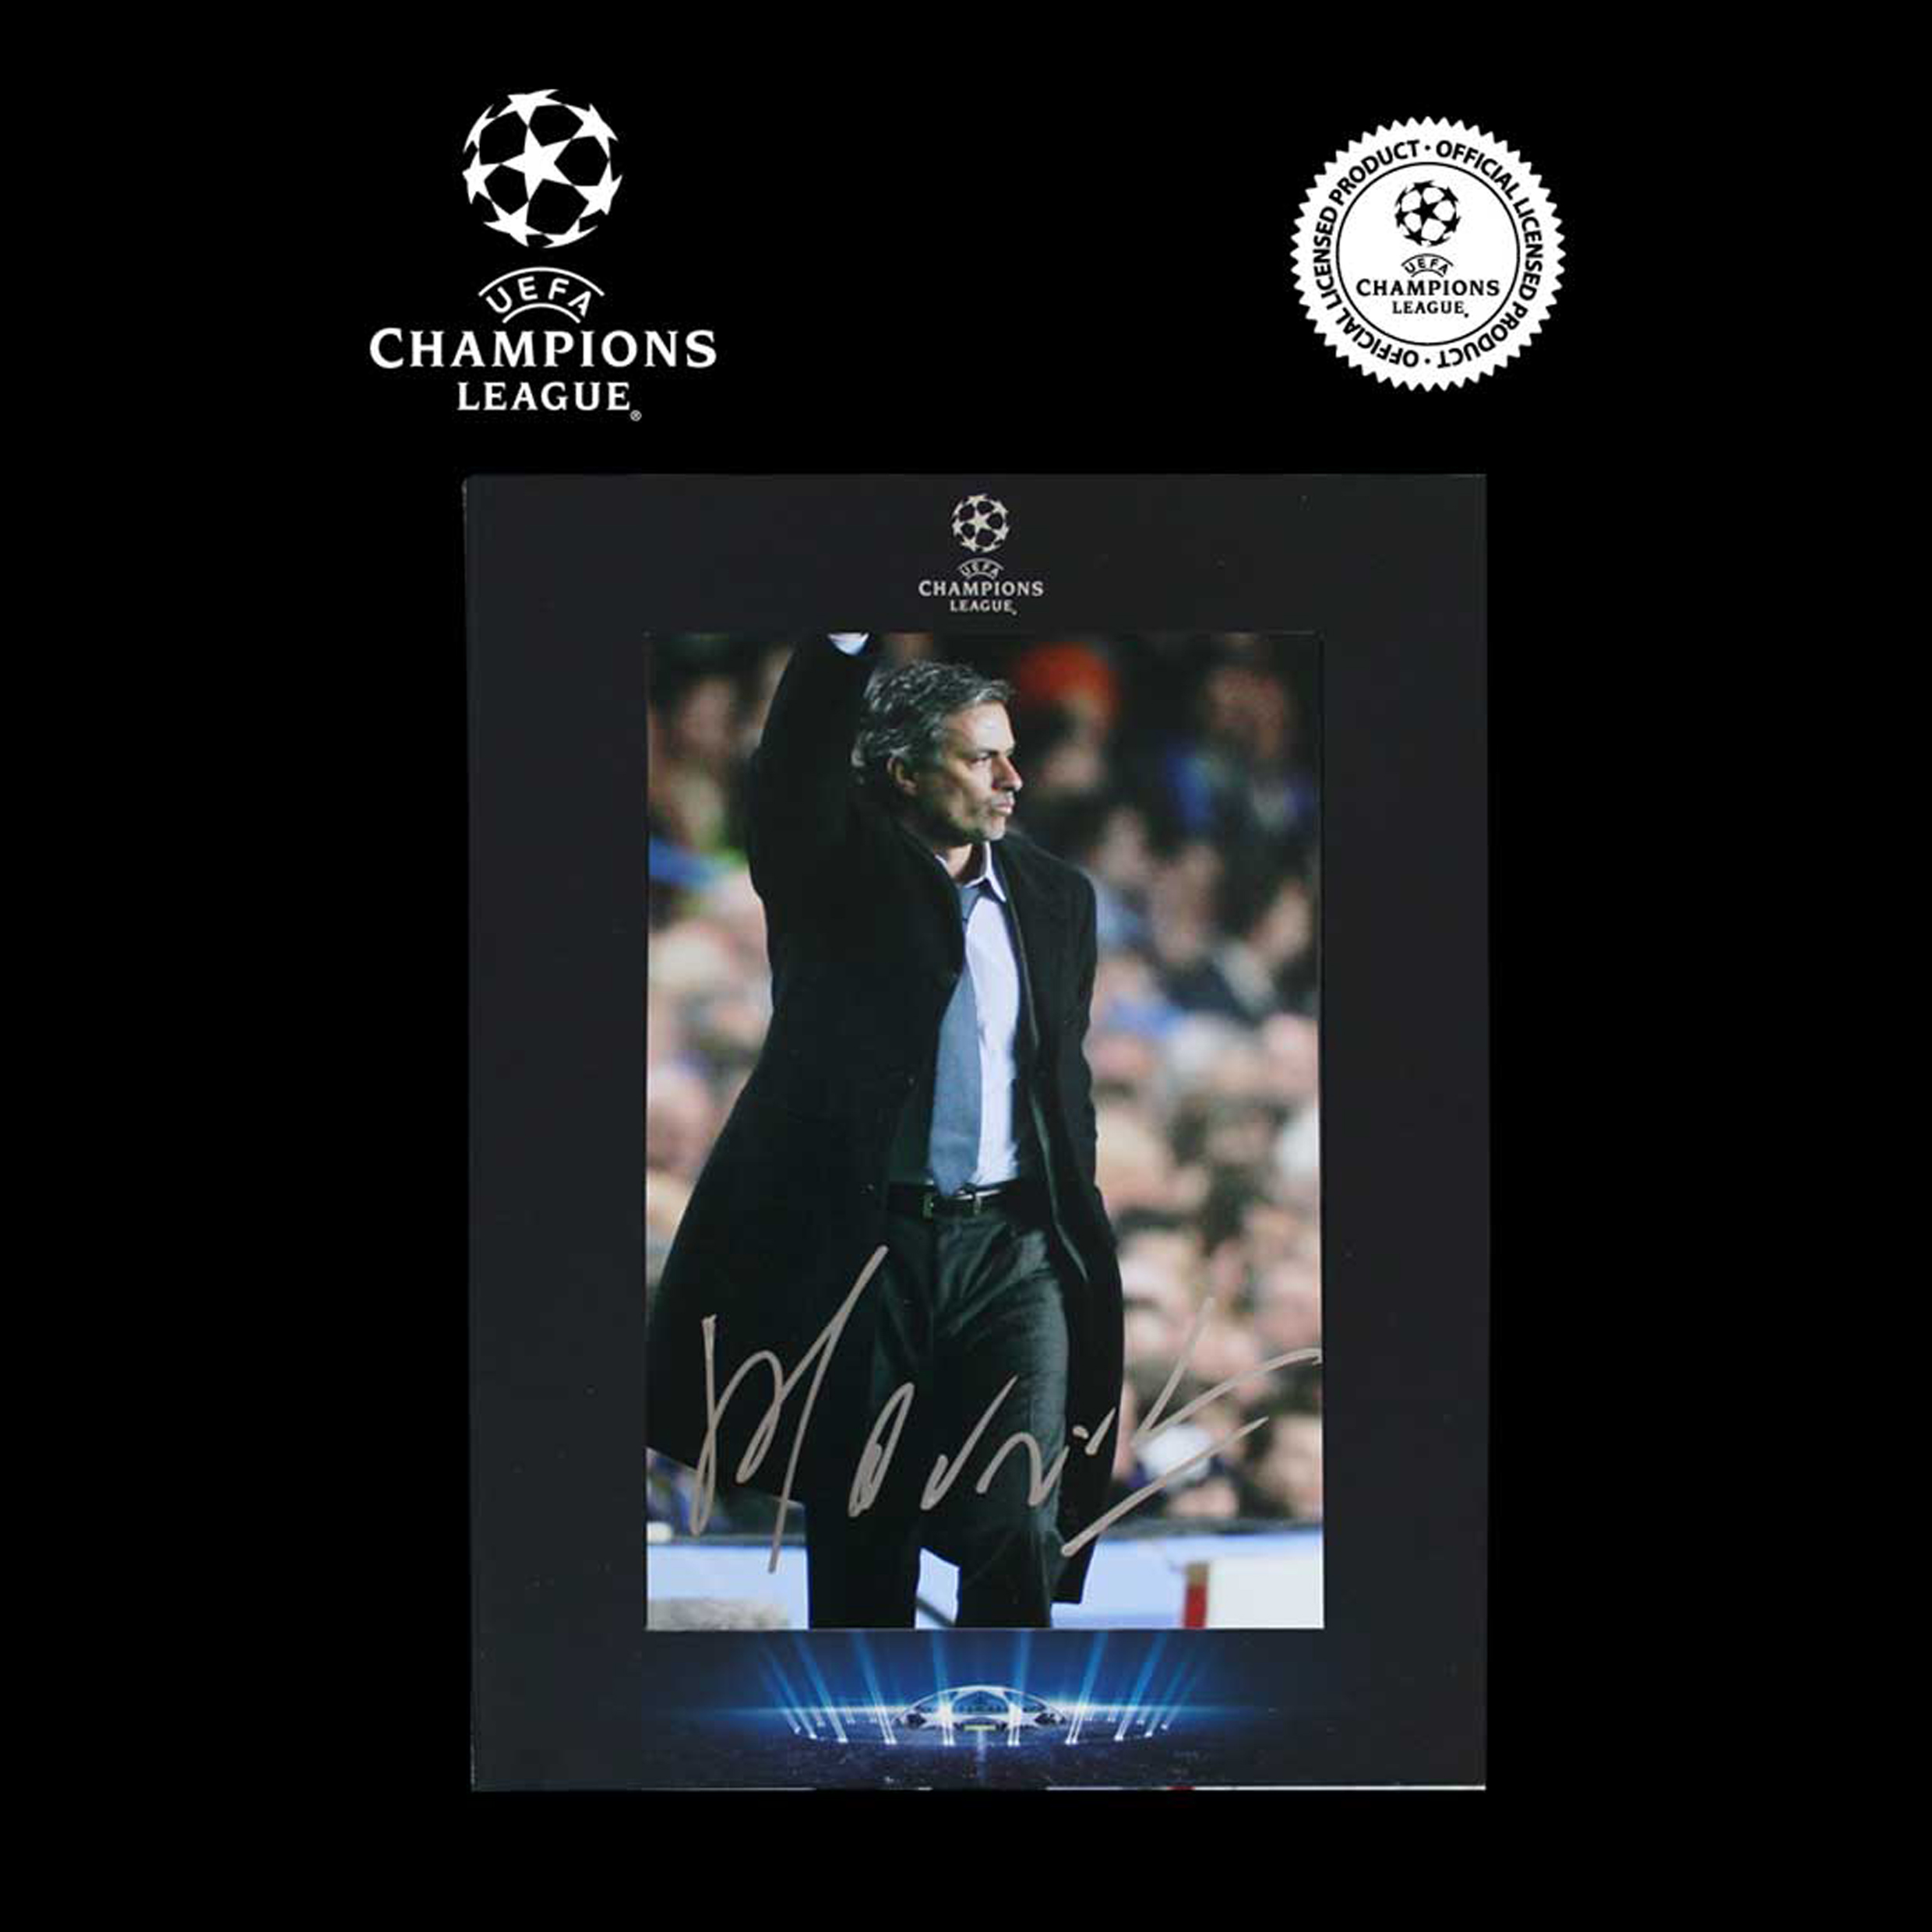 UEFA Champions League Jose Mourinho Signed Chelsea Photo in Deluxe Packaging: The Special One